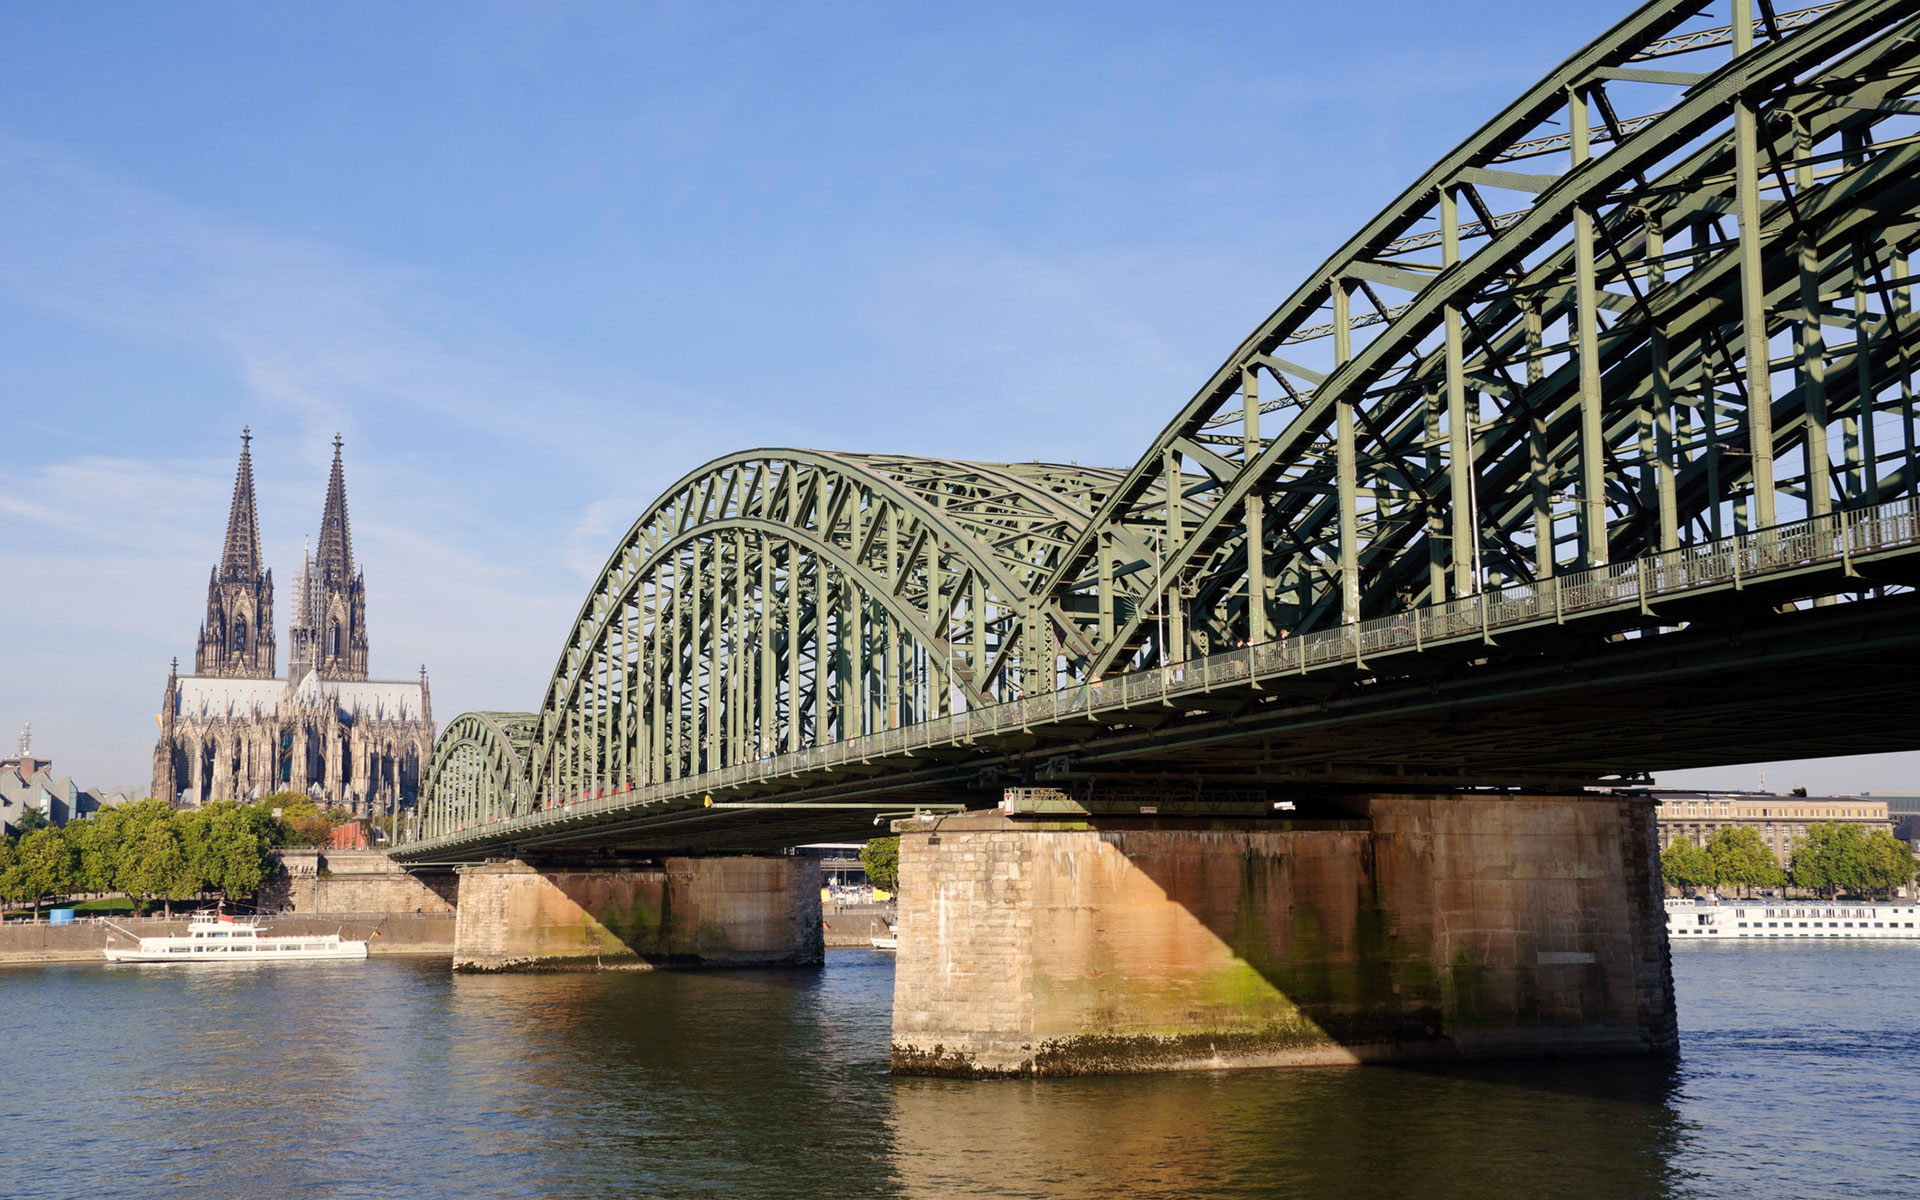 Rail travellers heading for Cologne this summer should prepare for revised rail timetables (photo © Hiro1775).